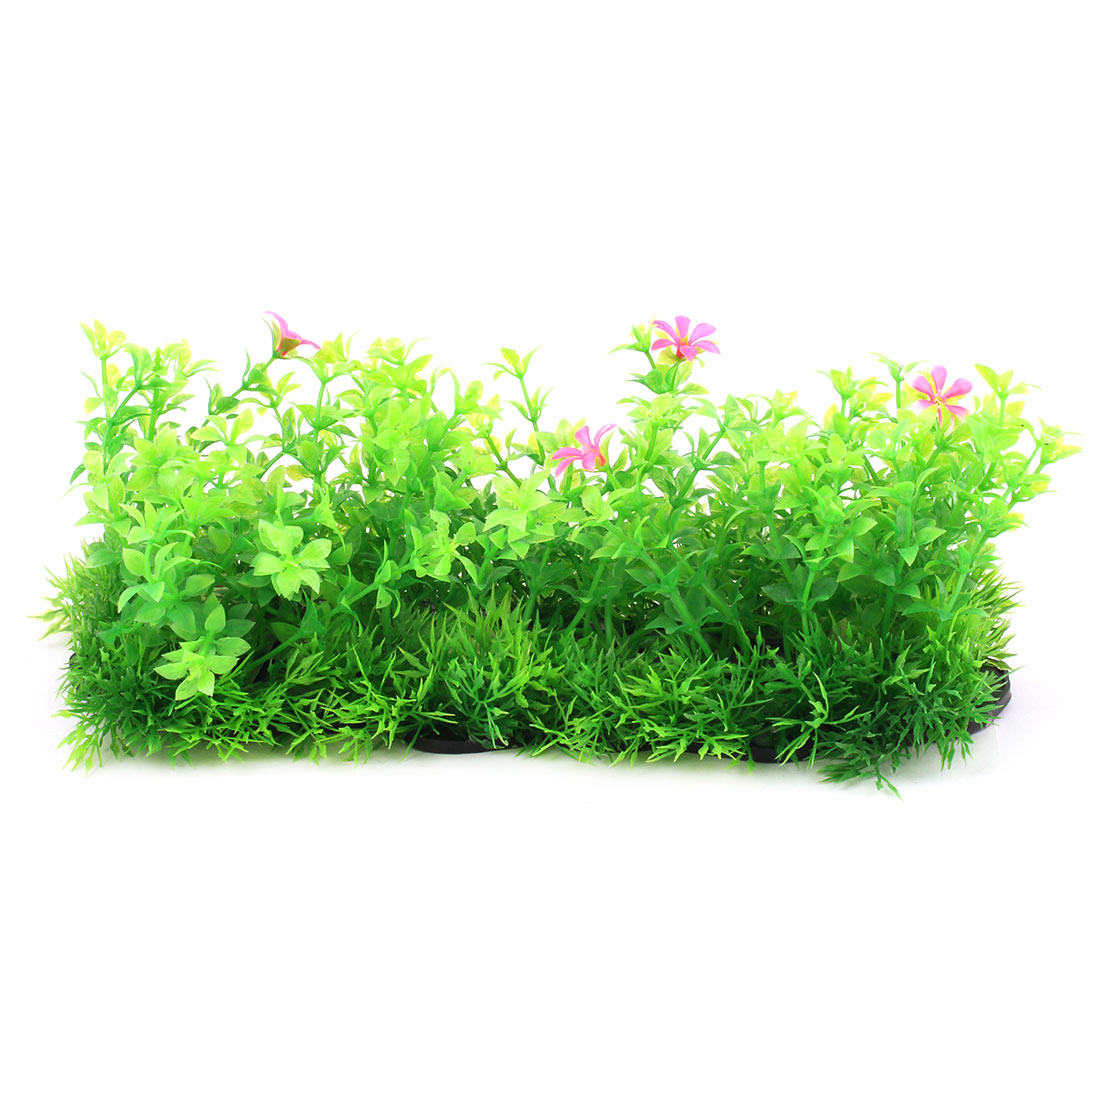 Unique BargainsAquarium Fish Bowl Plastic Artificial Grass Decoration Green 8cm Height